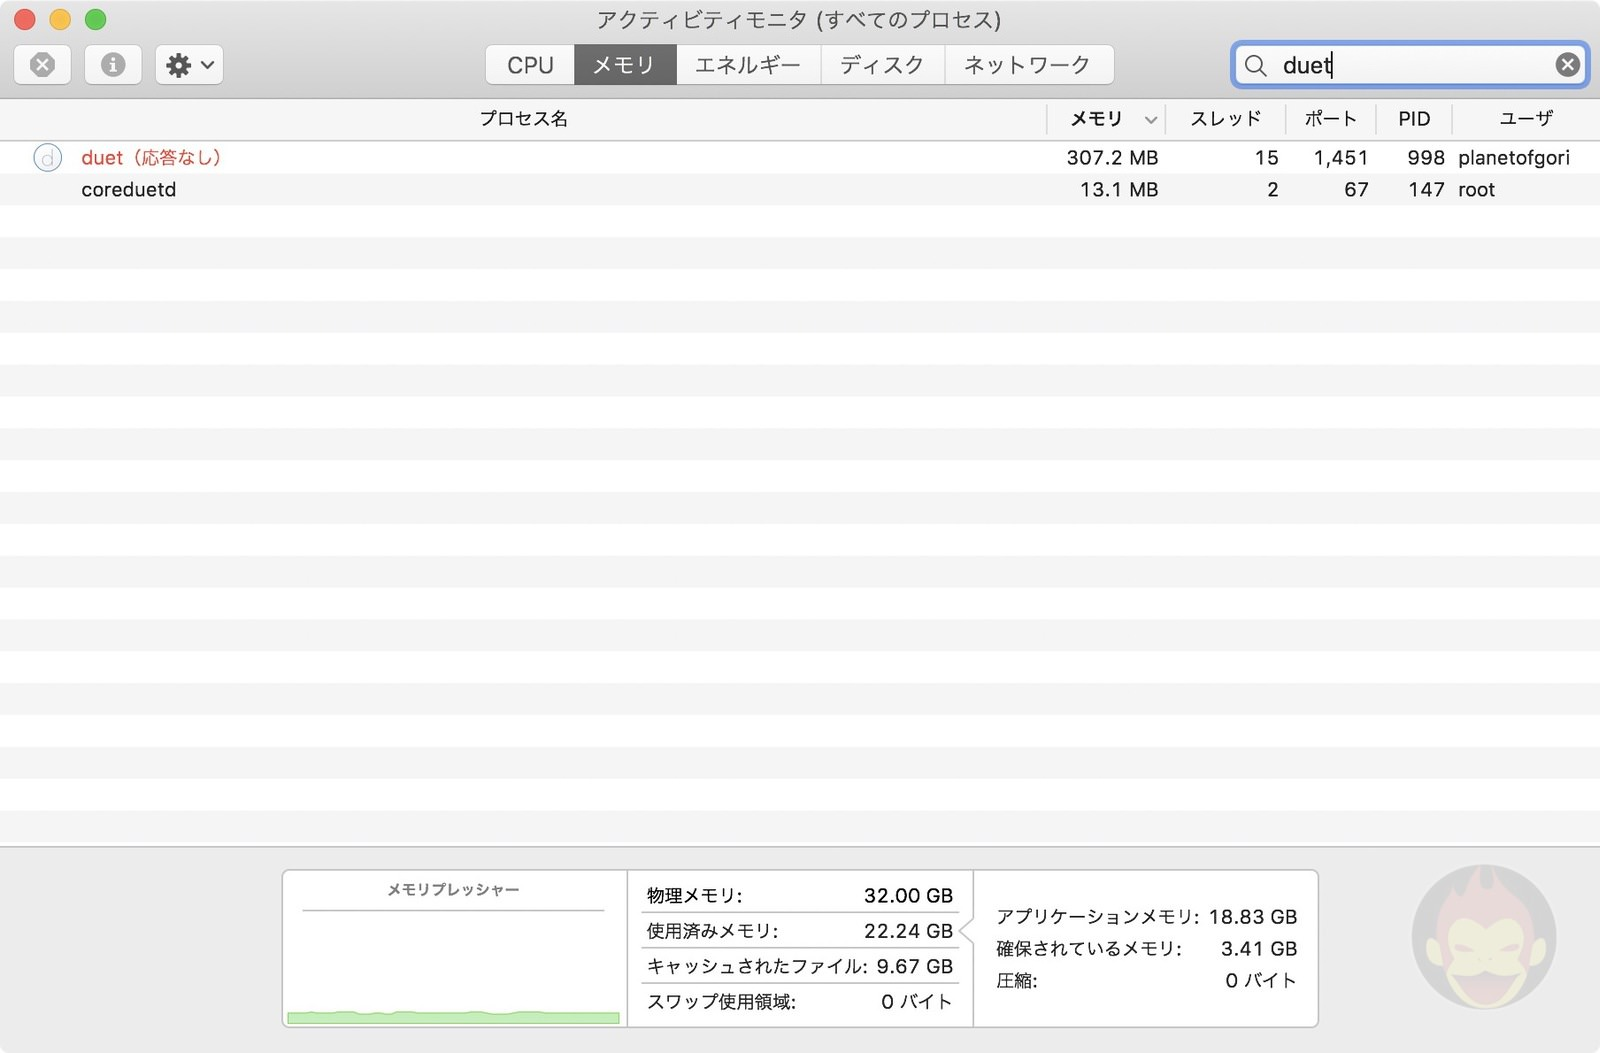 Duet-Luna-iPad-Display-for-mac-06.jpg